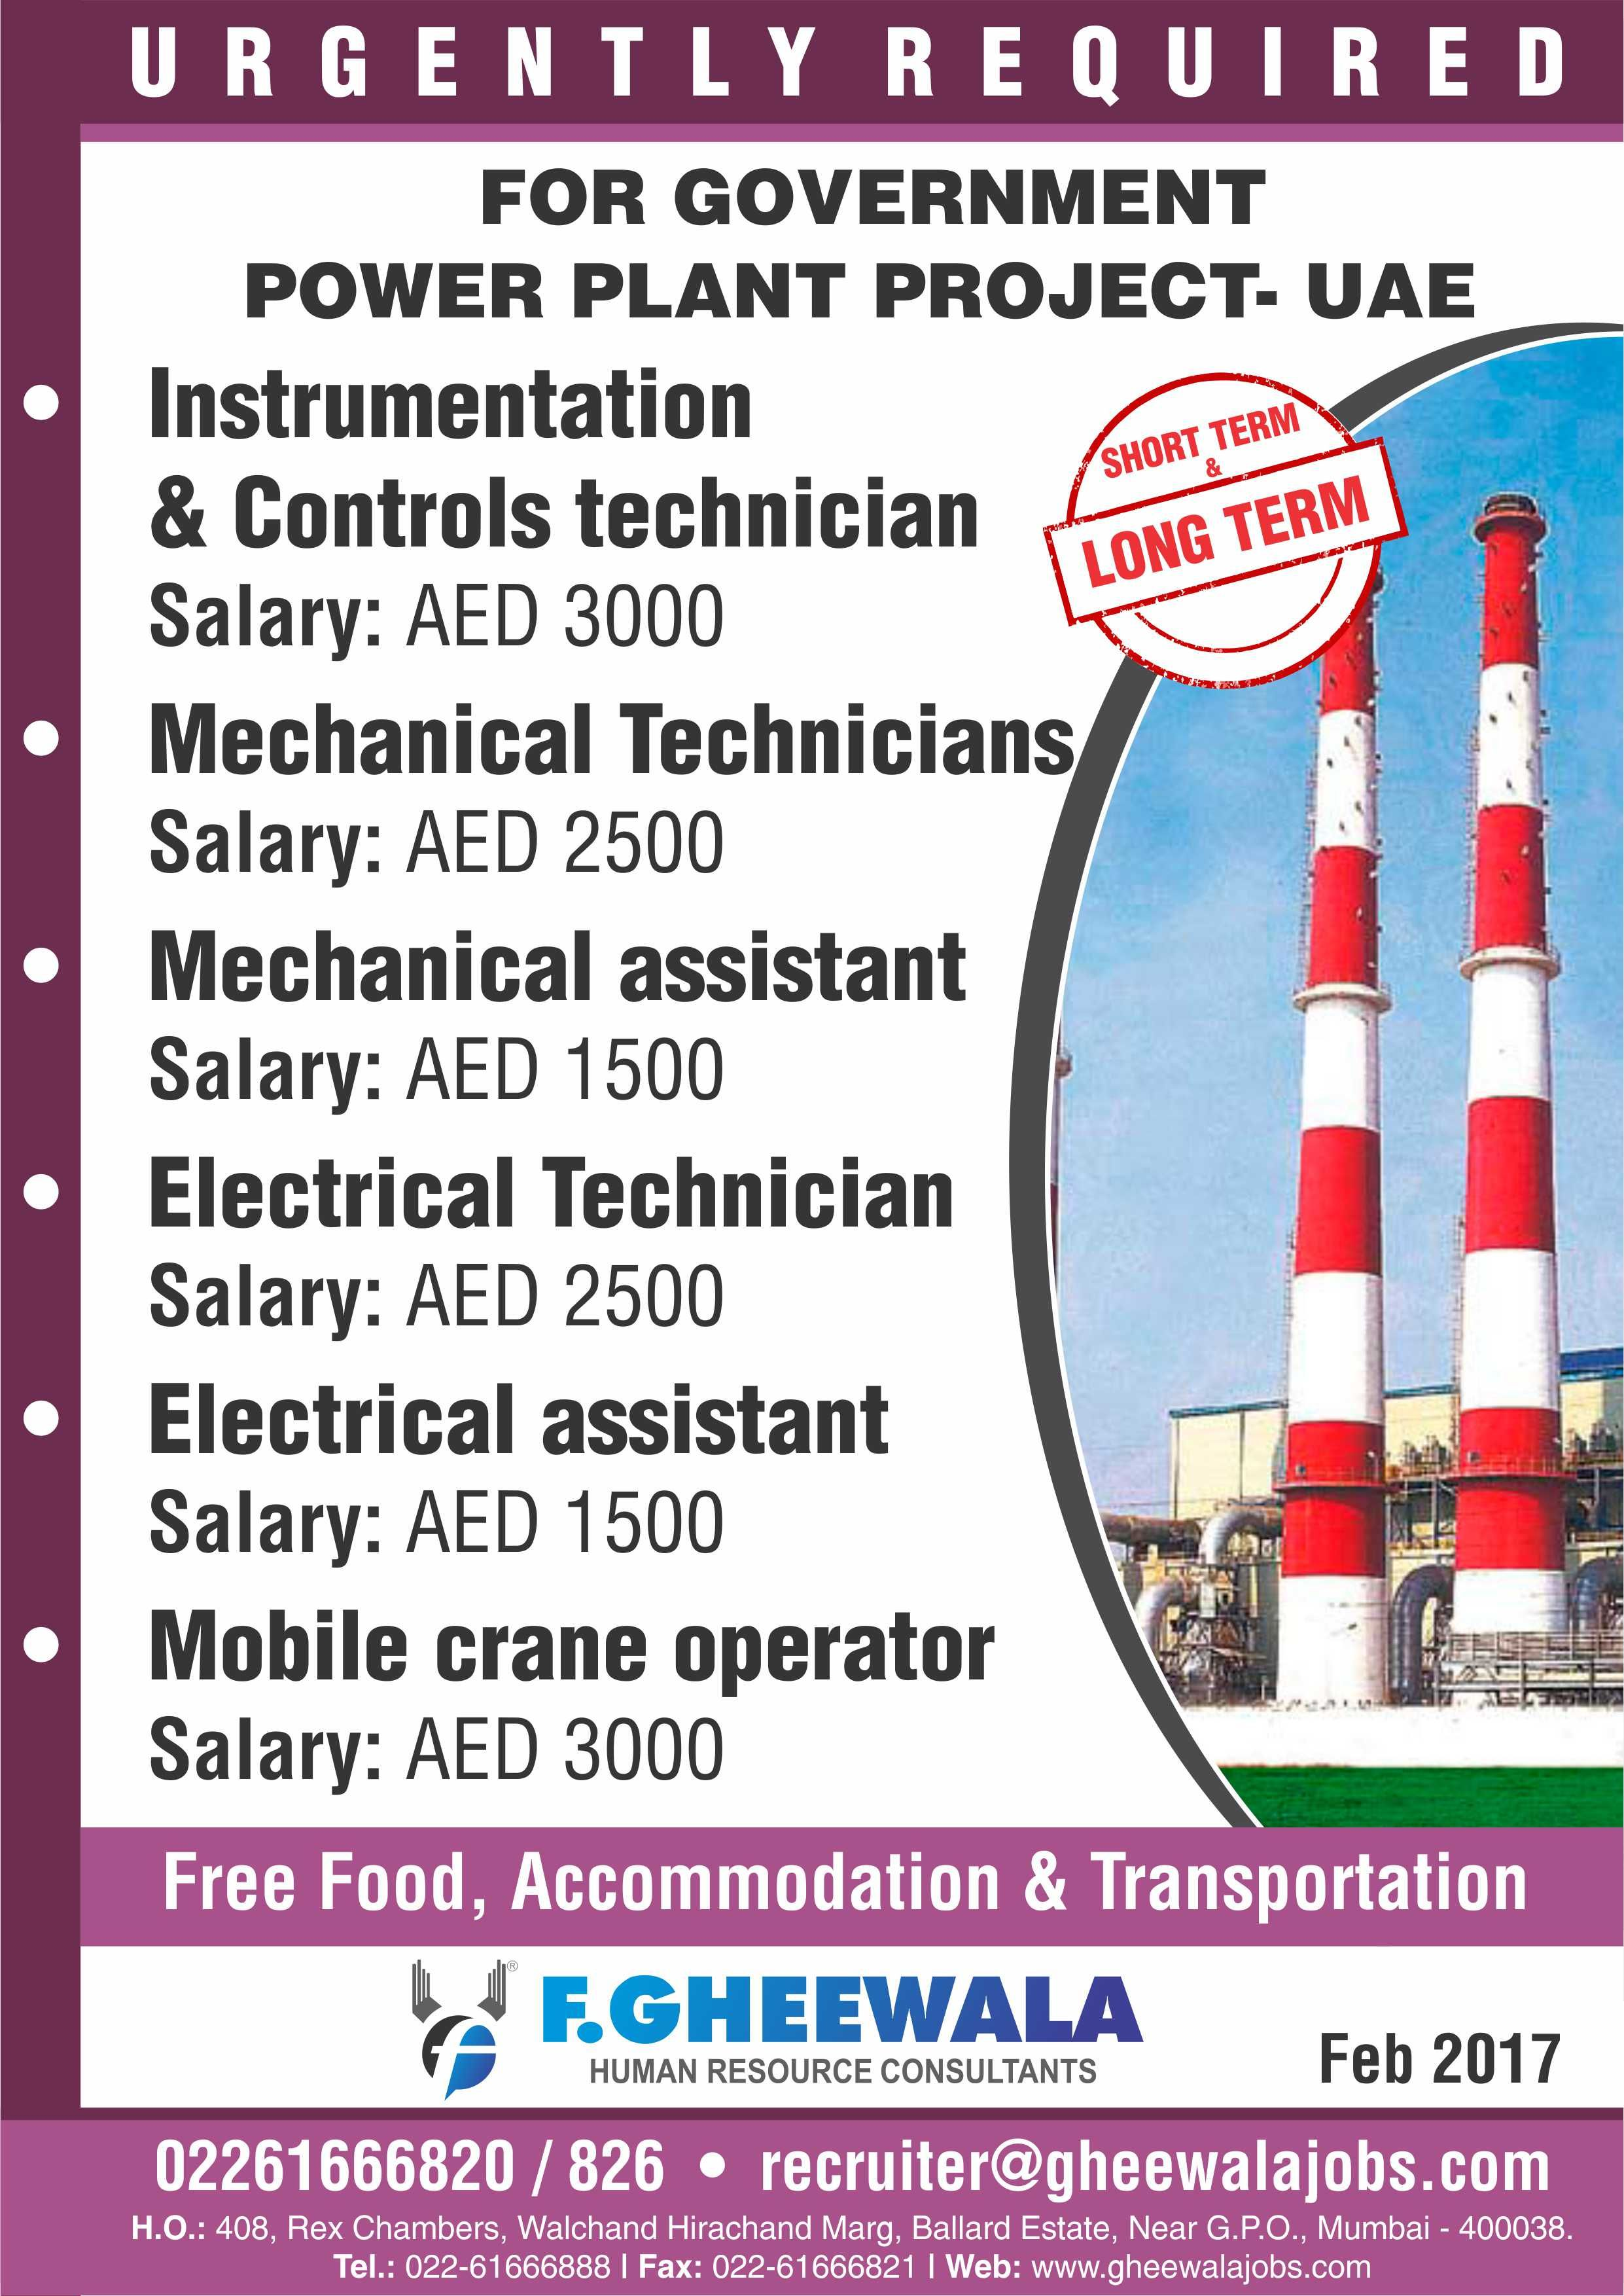 Urgently Required for GOVERNMENT POWER PLANT PROJECT in UAE